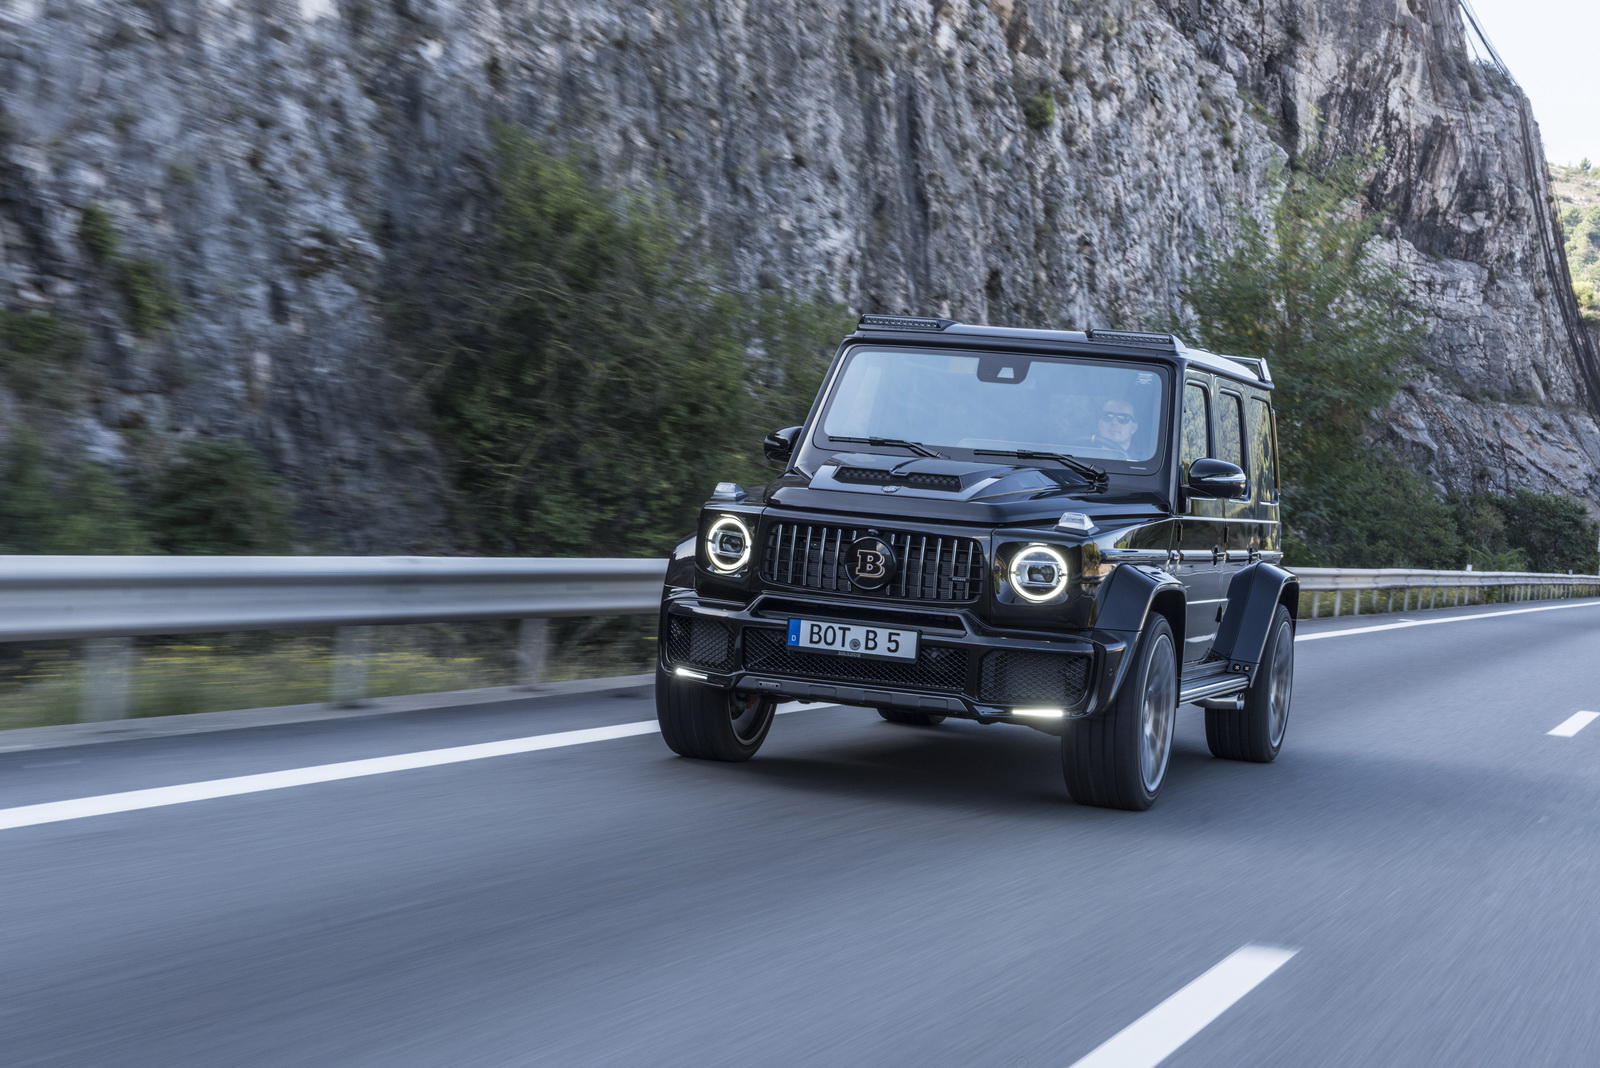 Meet The Brabus tuned G63 AMG - Brabus 700 Widestar - Img credit --Auto Guide